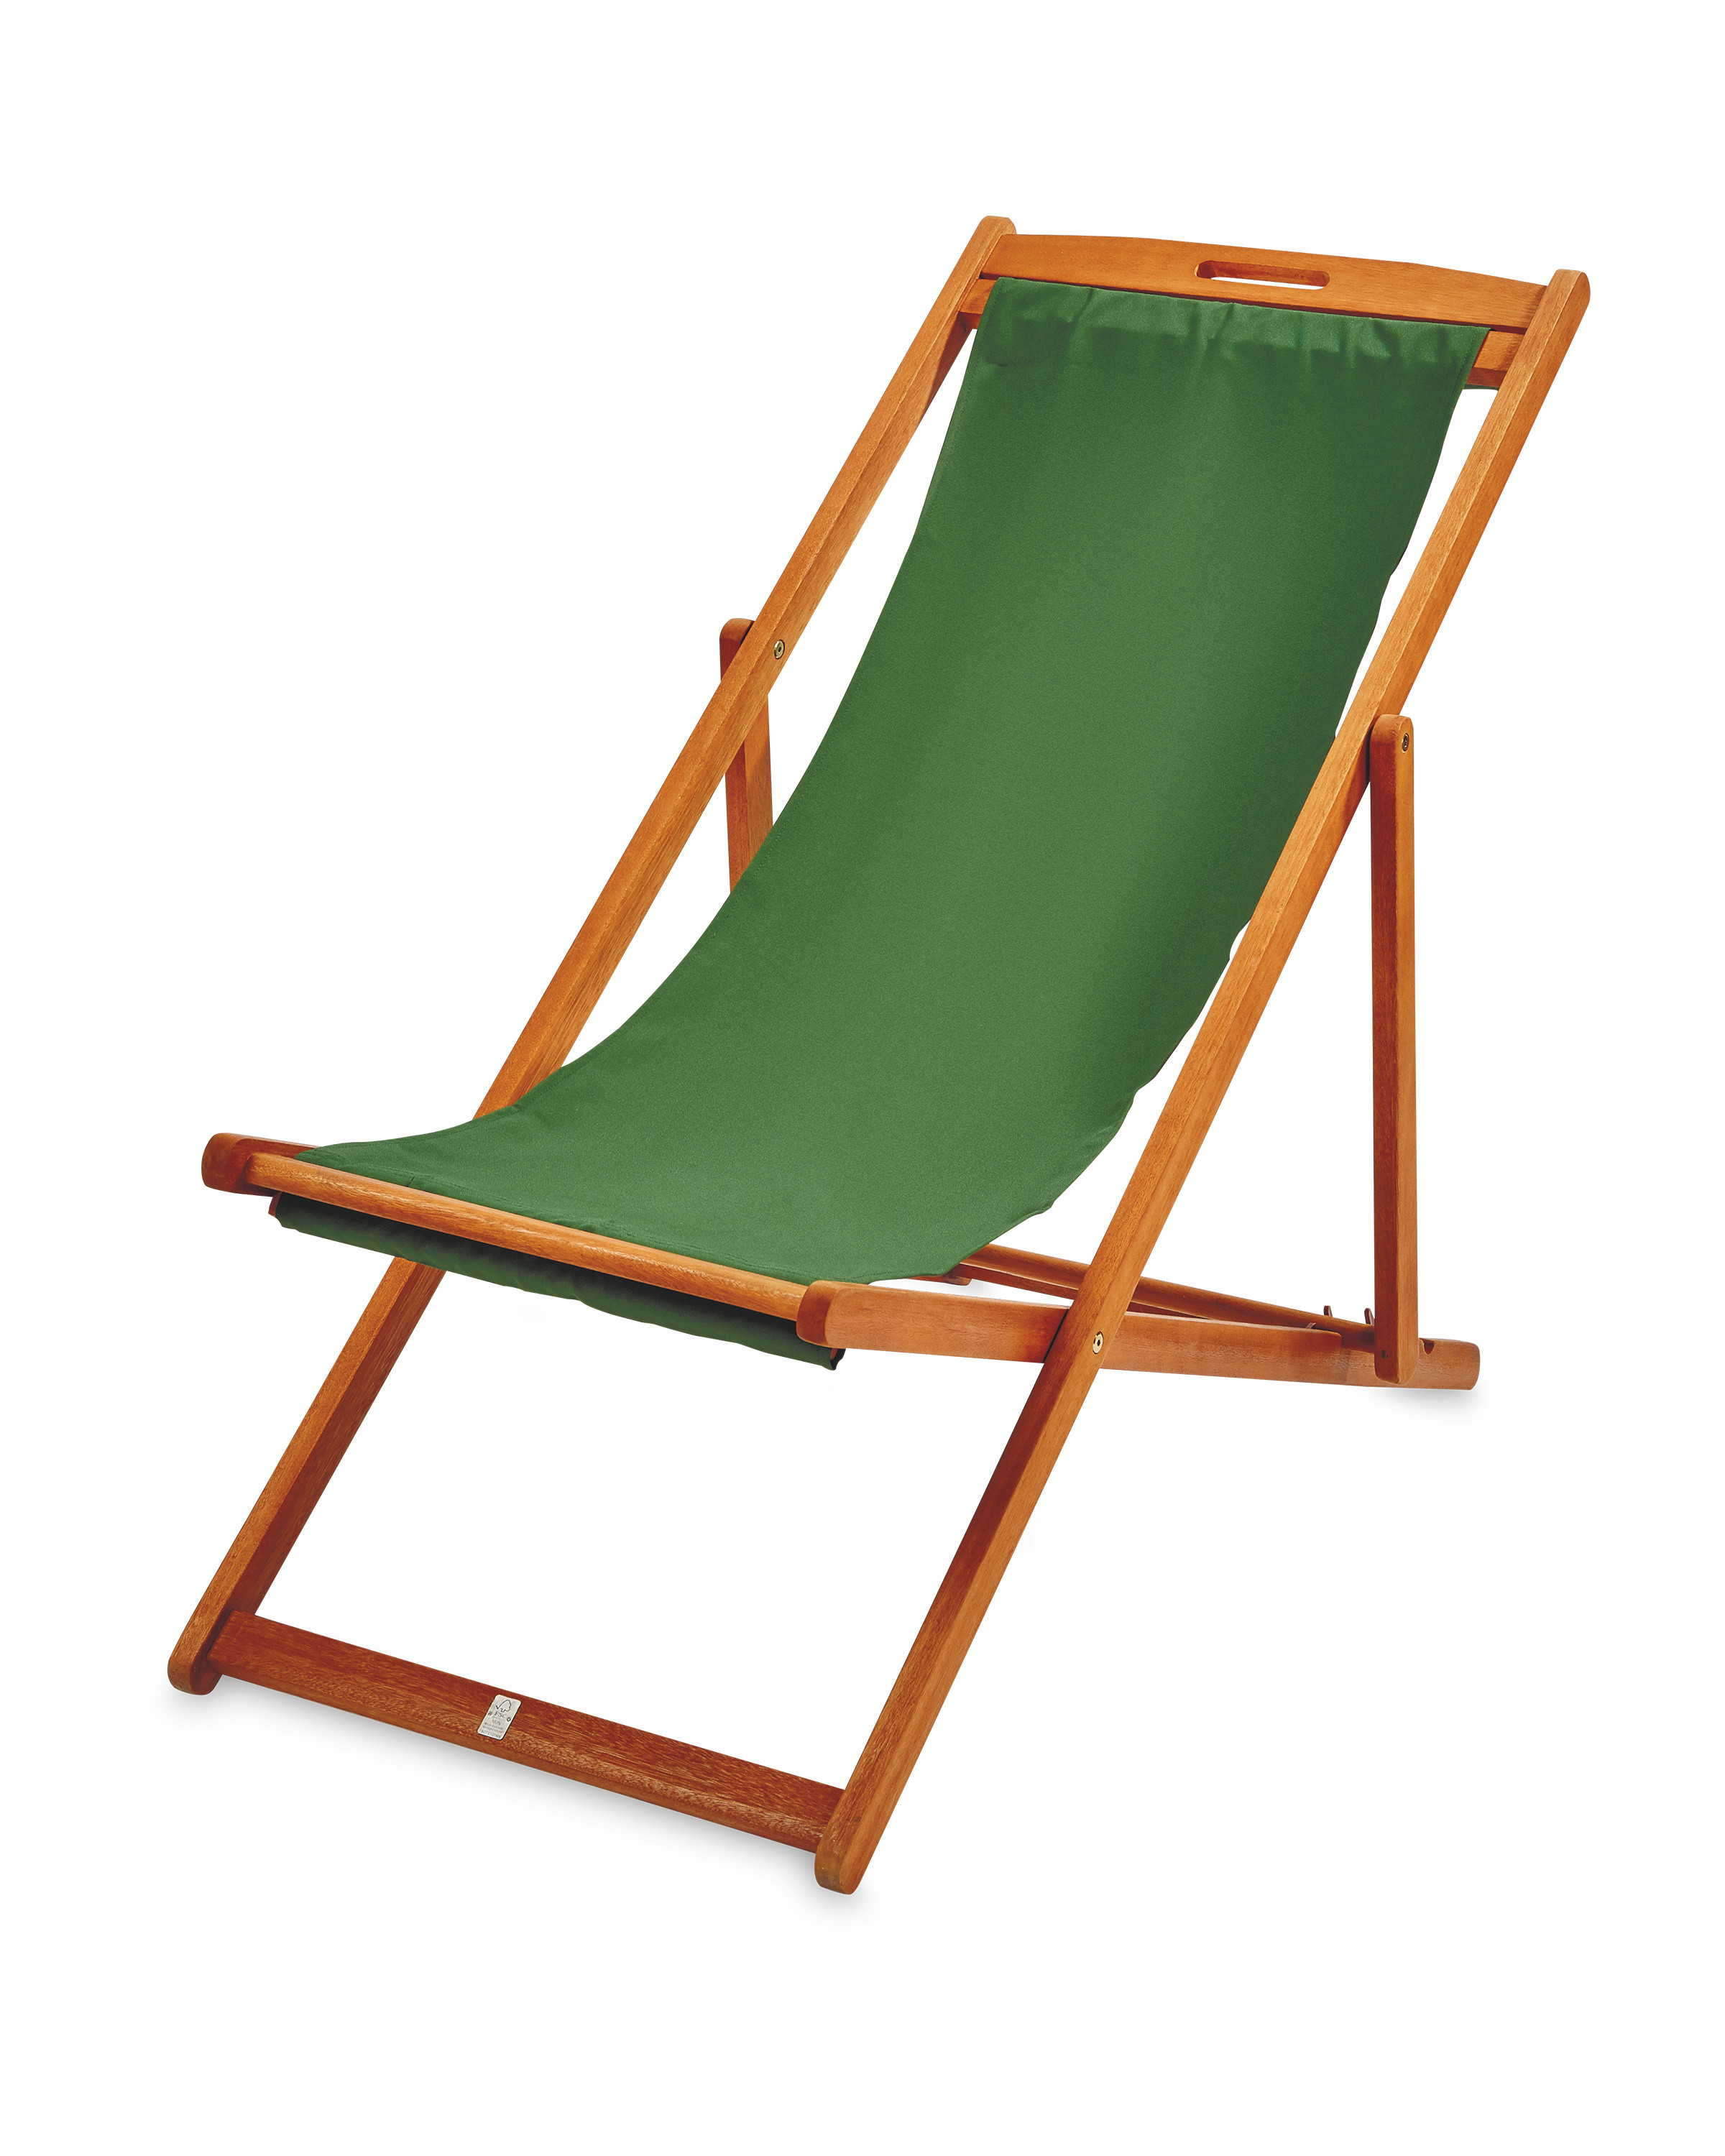 Green Wooden Deck Chair